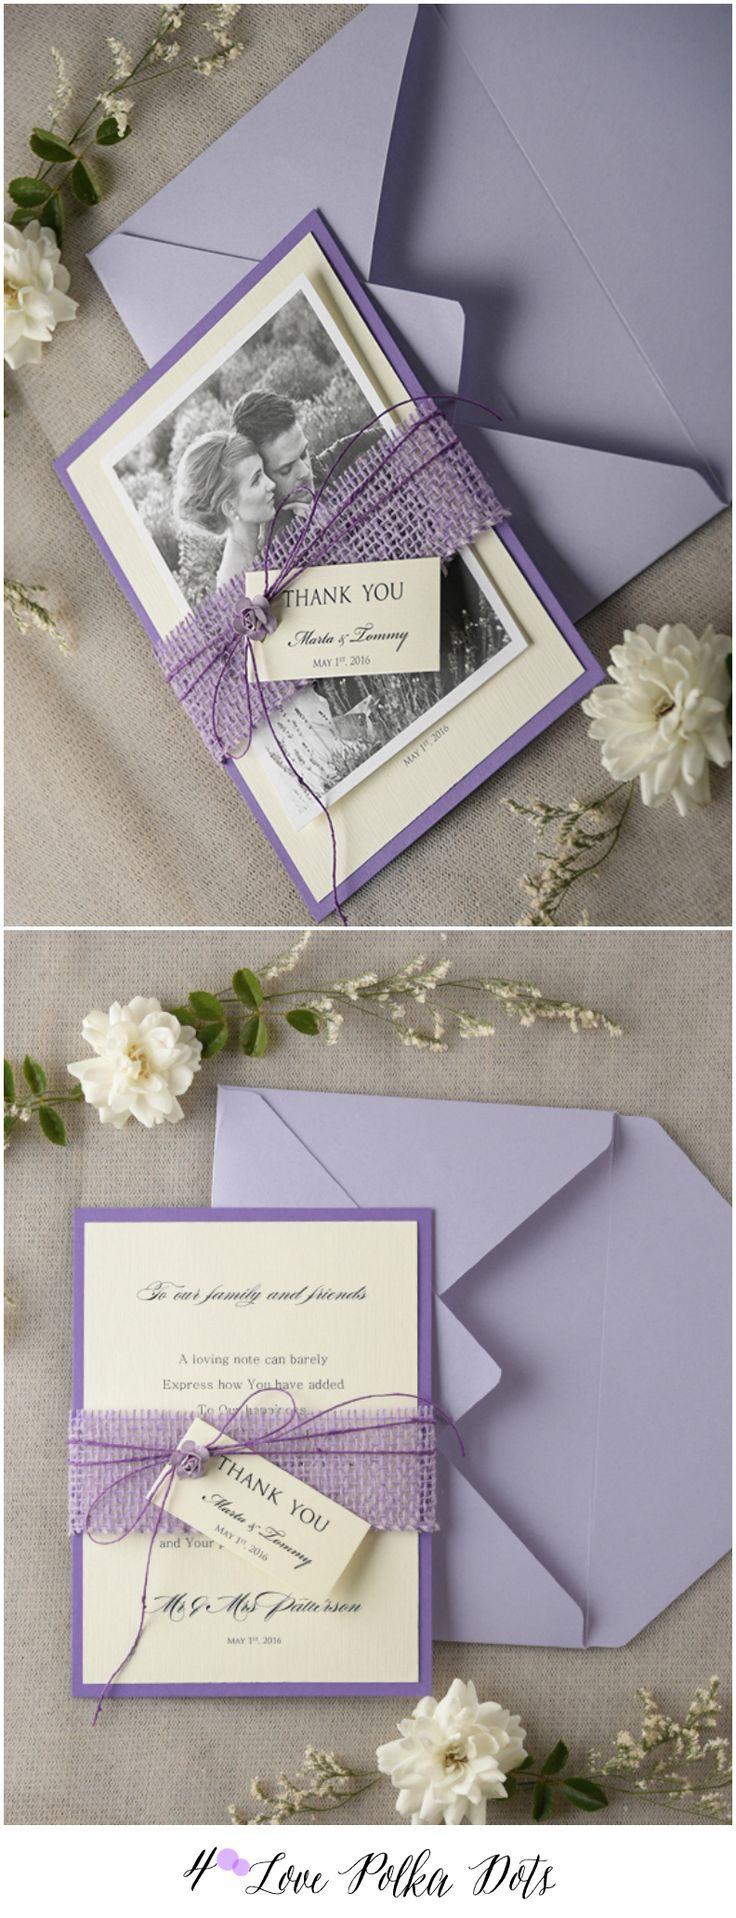 diy wedding invites rustic%0A Lavender Rustic Thank You Card with your photo    weddingideas  rustic   rusticwedding    Floral WeddingDiy